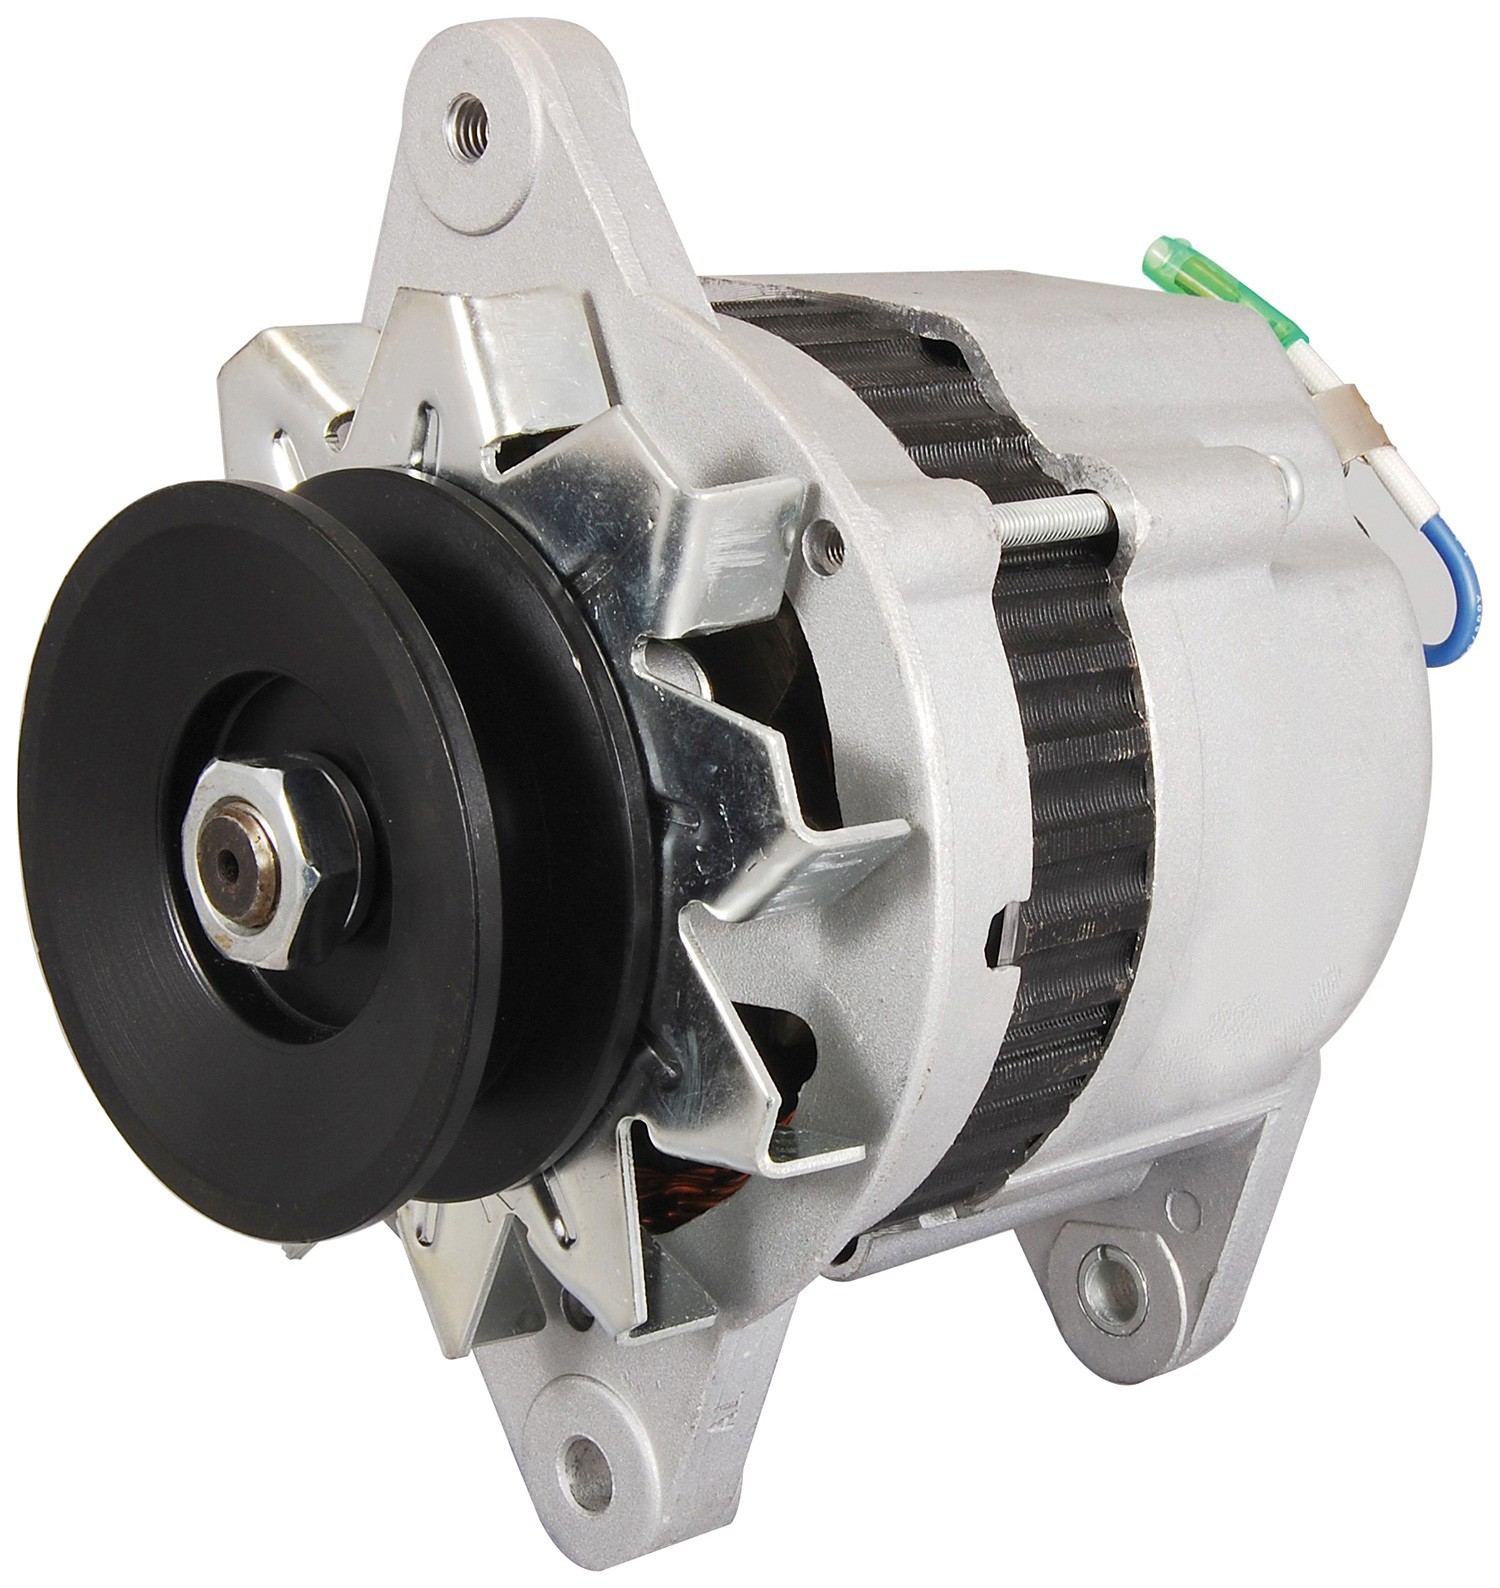 Forklift Hi-Lo Alternator- HI IR/EF12288N Fits Mustang Skid Steer Loader